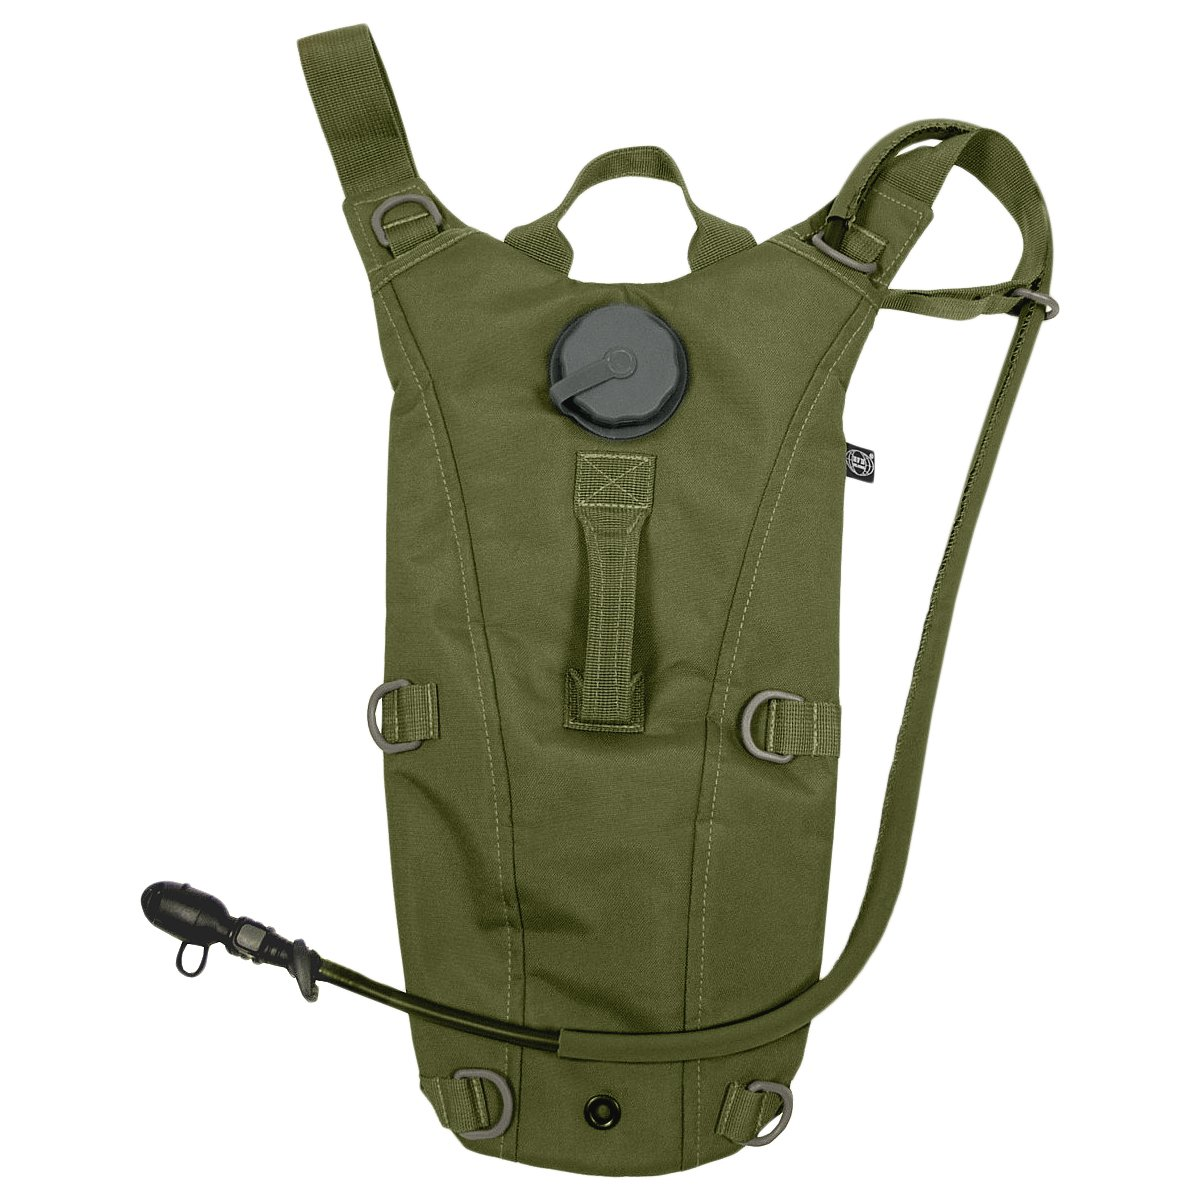 MFH Hydration Backpack TPU Extreme OD Green by MFH Max Fuchs